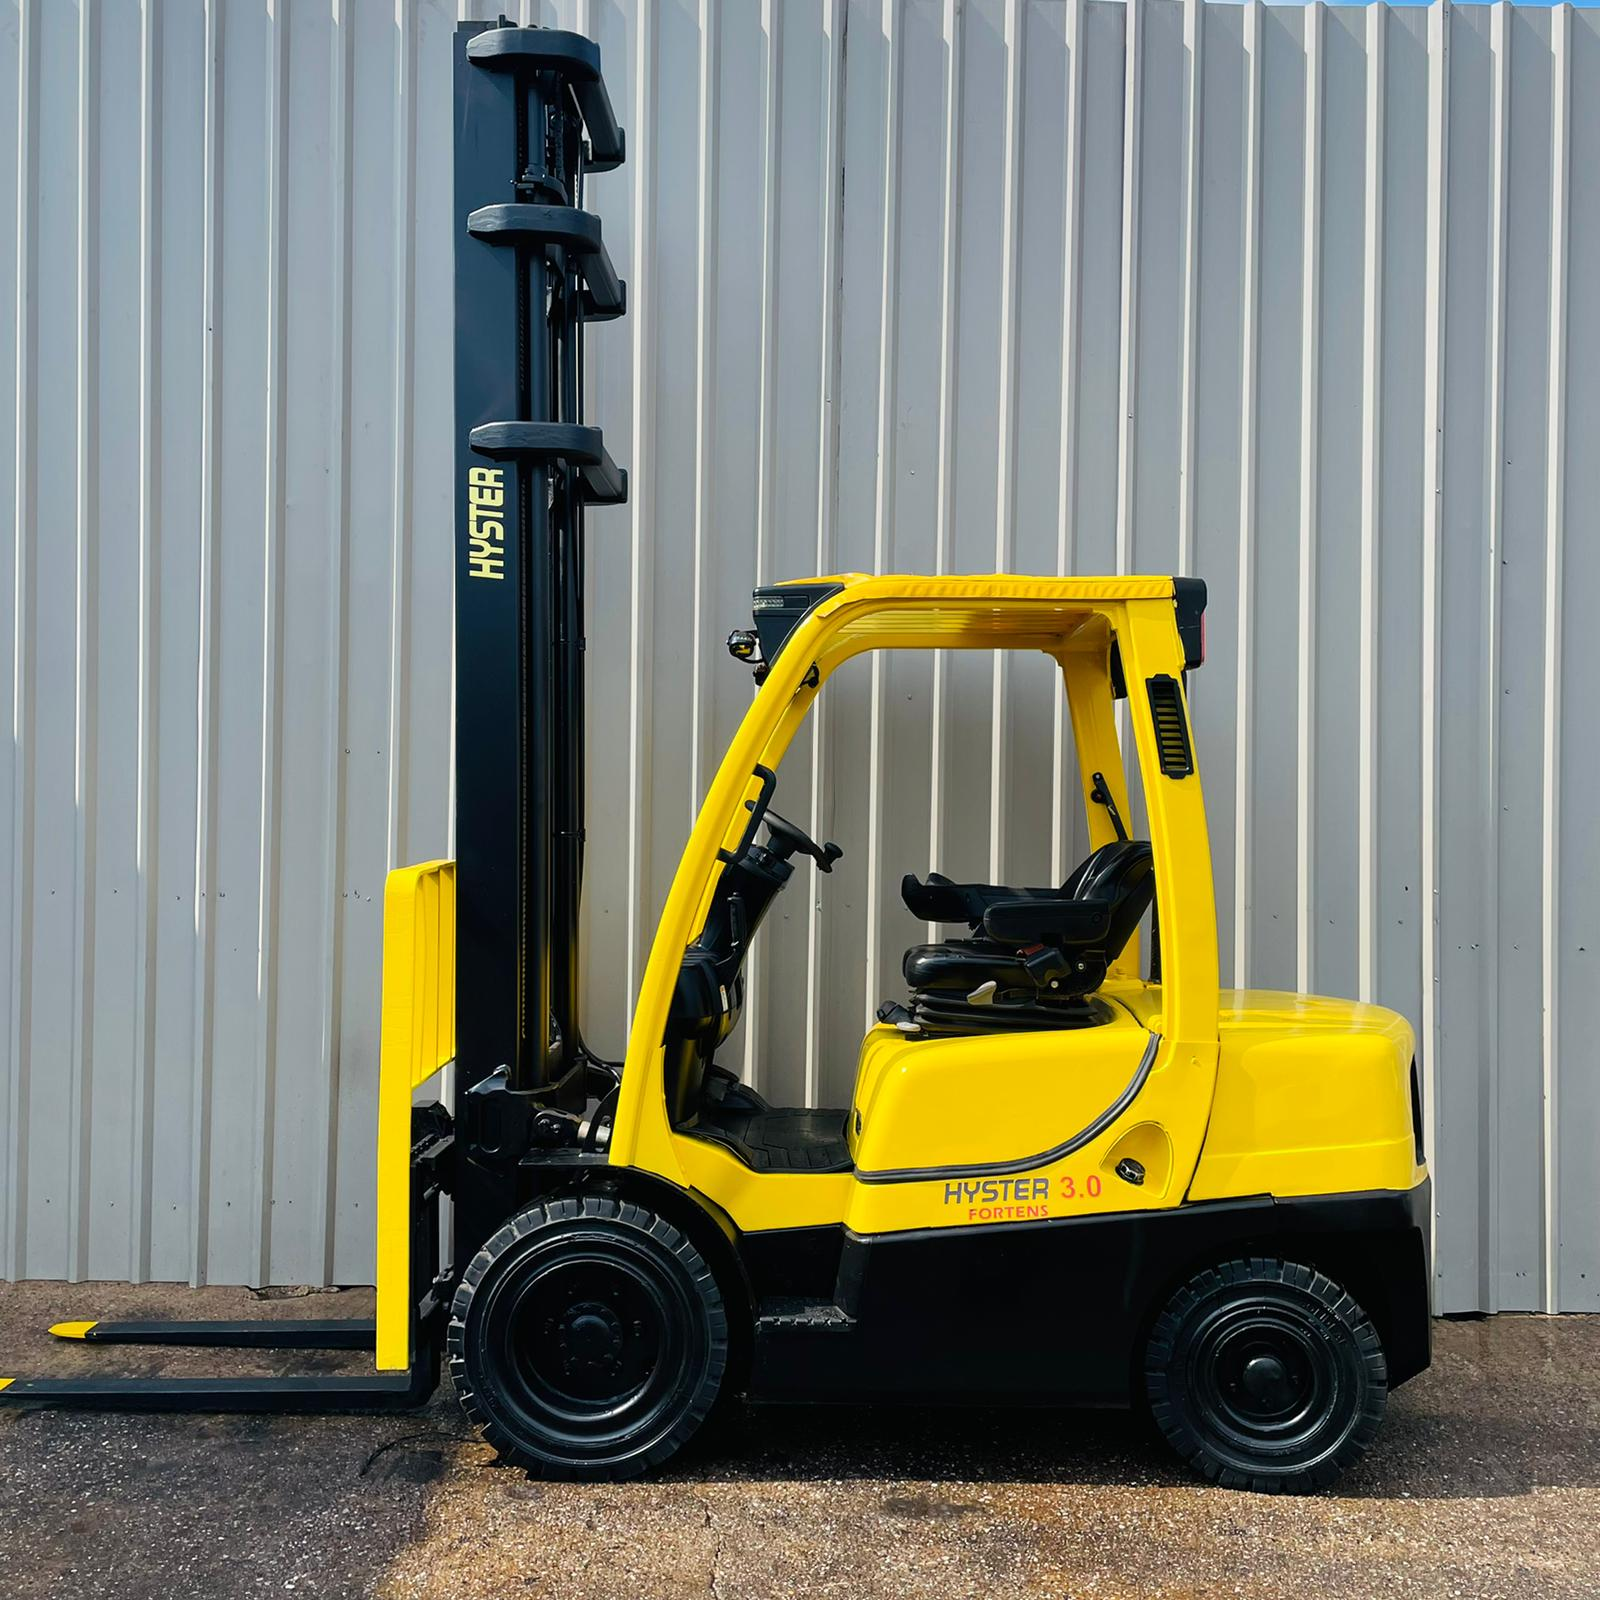 HYSTER H3.0FT #3472 L177B33242J WhatsApp Image 2021-07-14 at 11.21.59 AM (1)